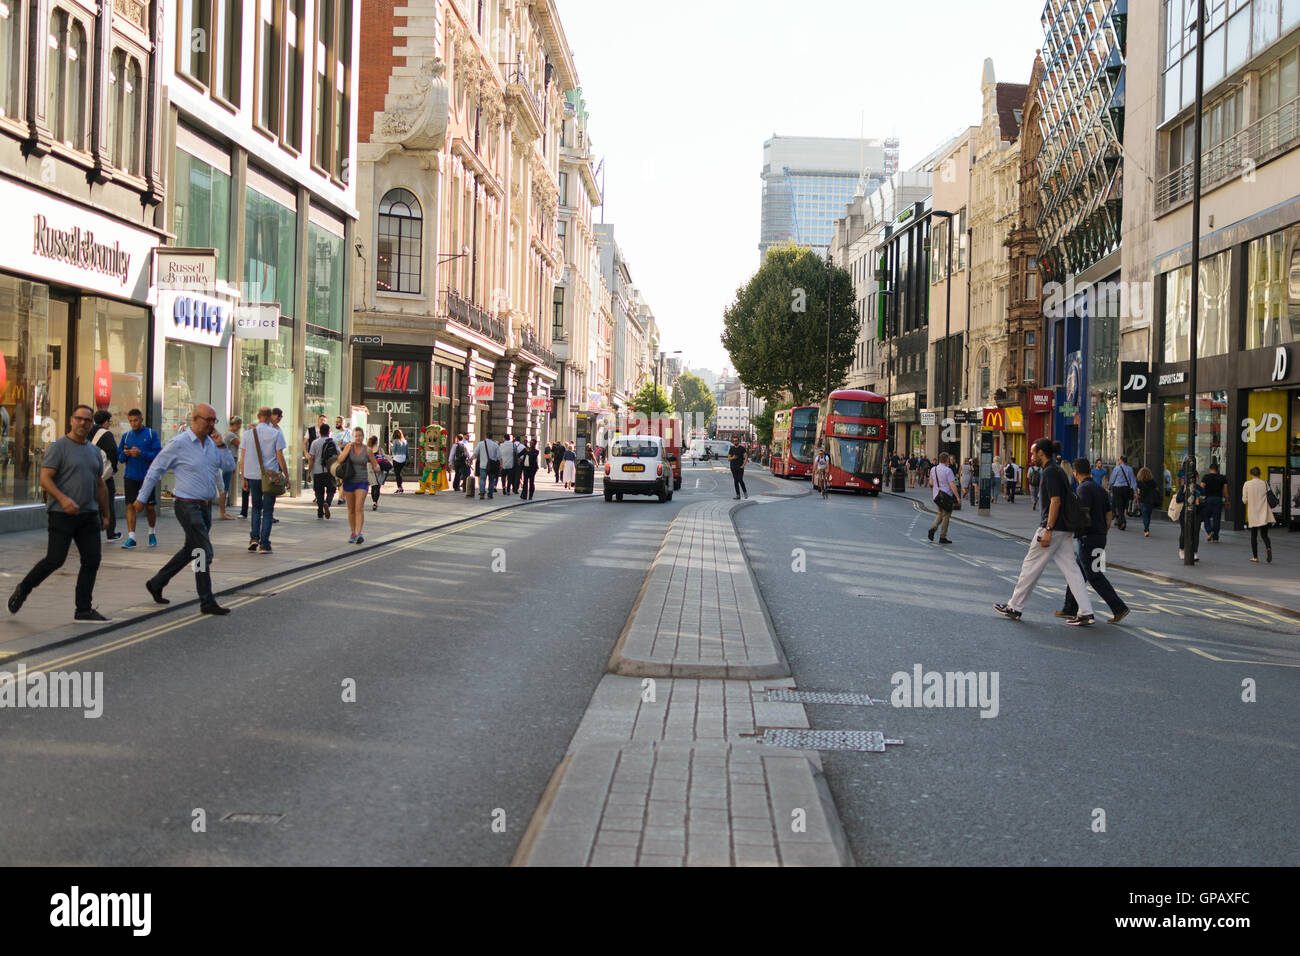 London, England, UK - 30 August 2016: Pedestrians cross Oxford street at early hours. Oxford road has around 300 - Stock Image